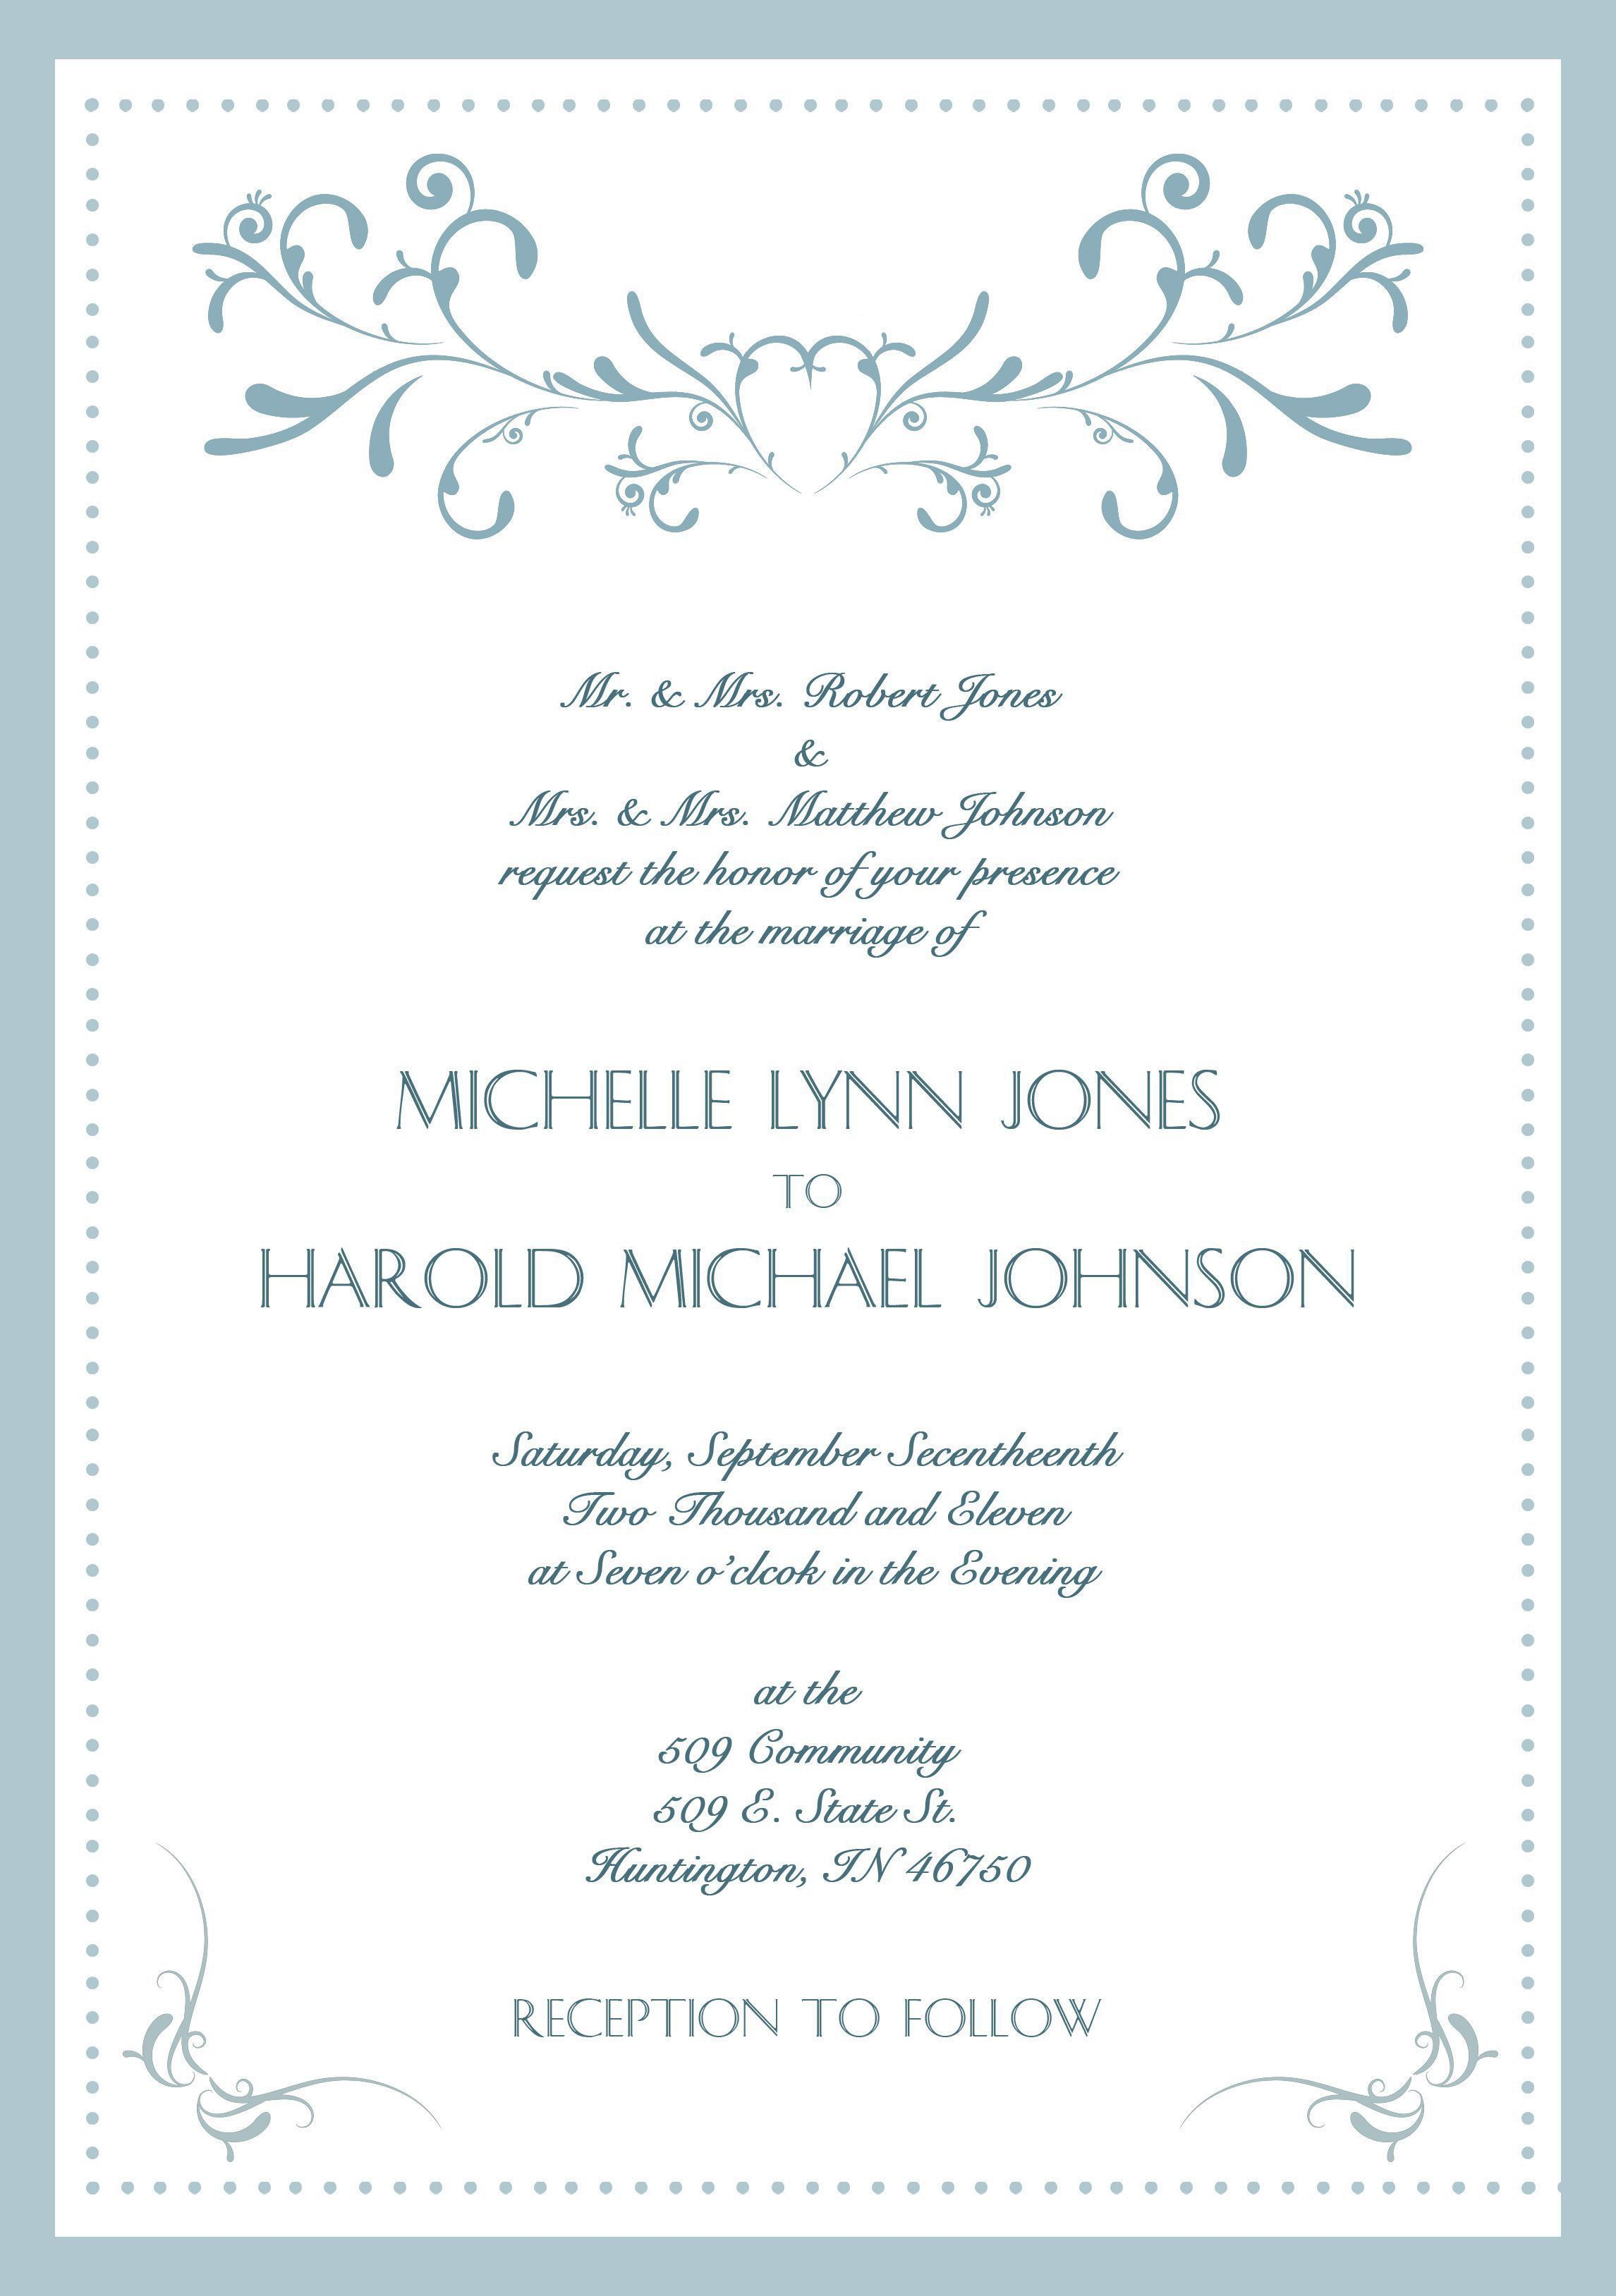 Sample wedding invitation cards in english wedding invitations sample wedding invitation cards in english stopboris Image collections